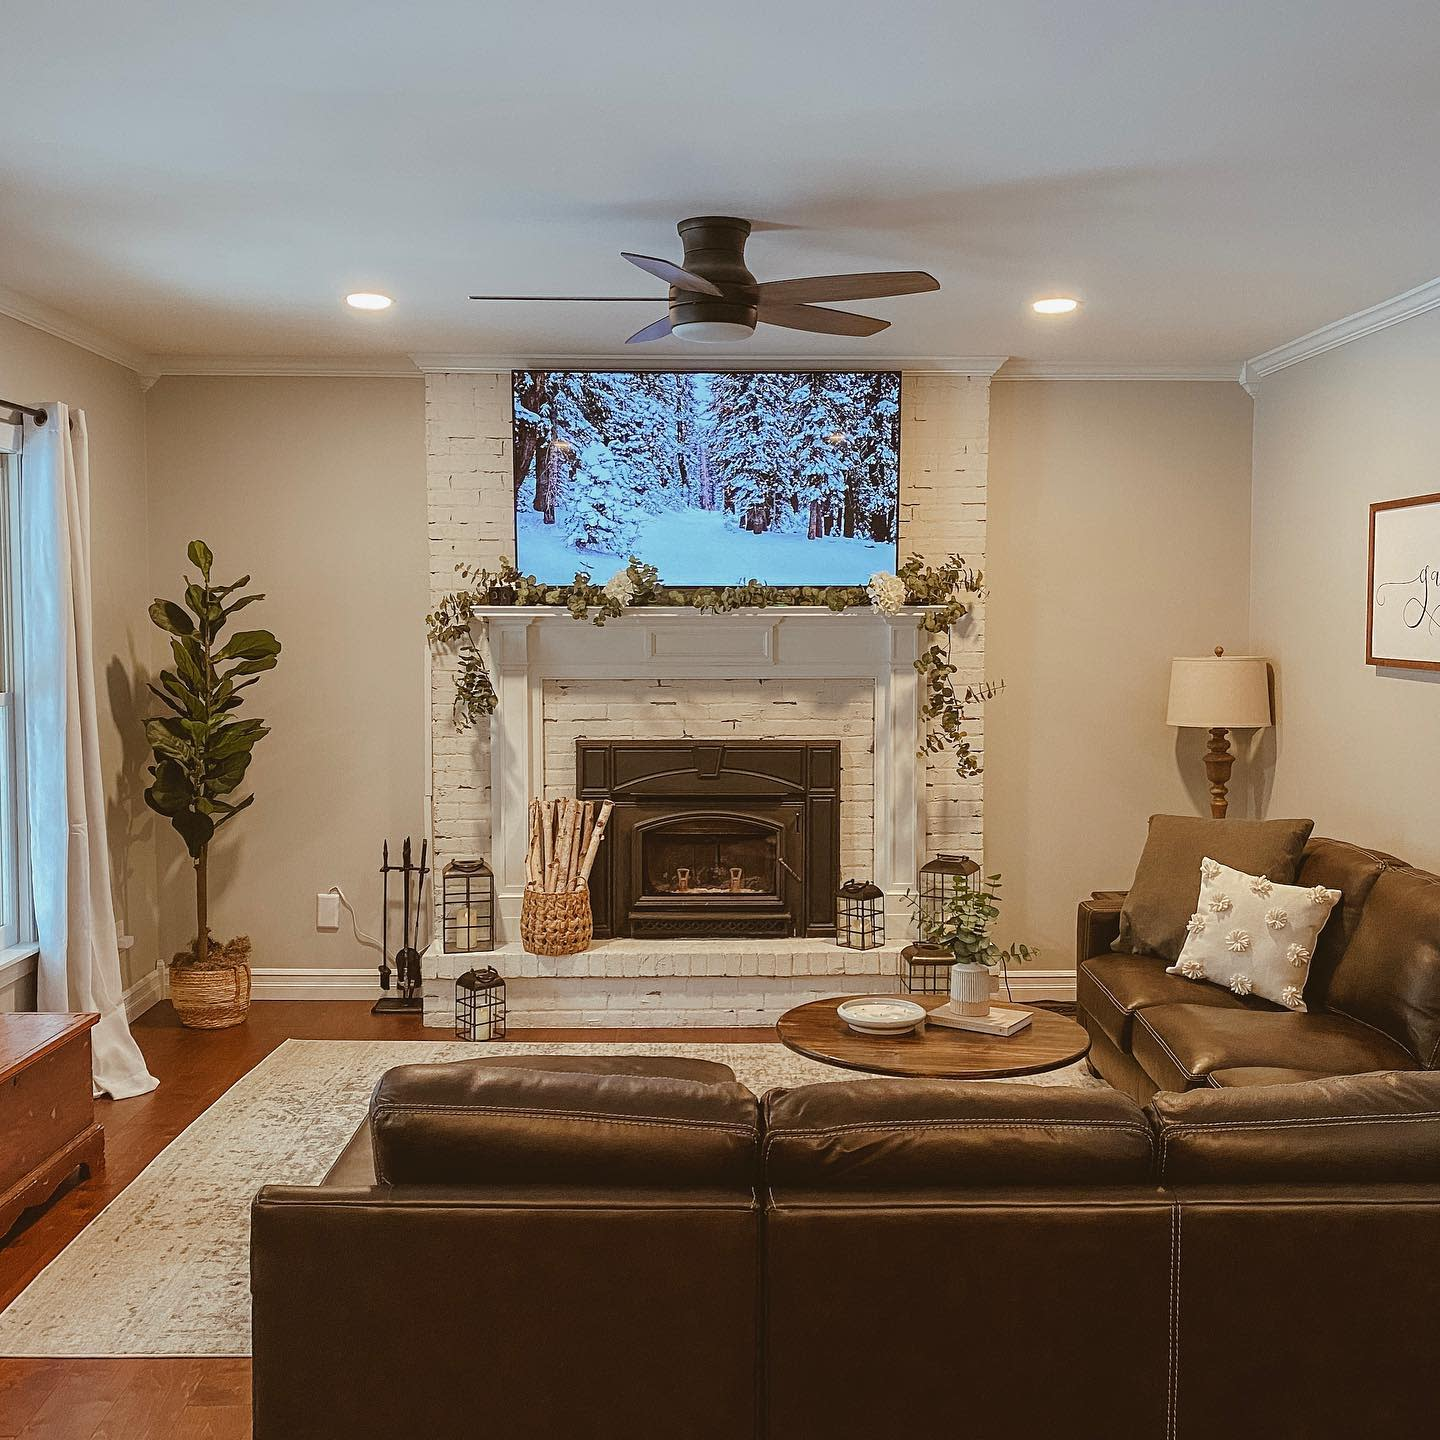 Fireplace Rustic Living Room Ideas -christiannaparker